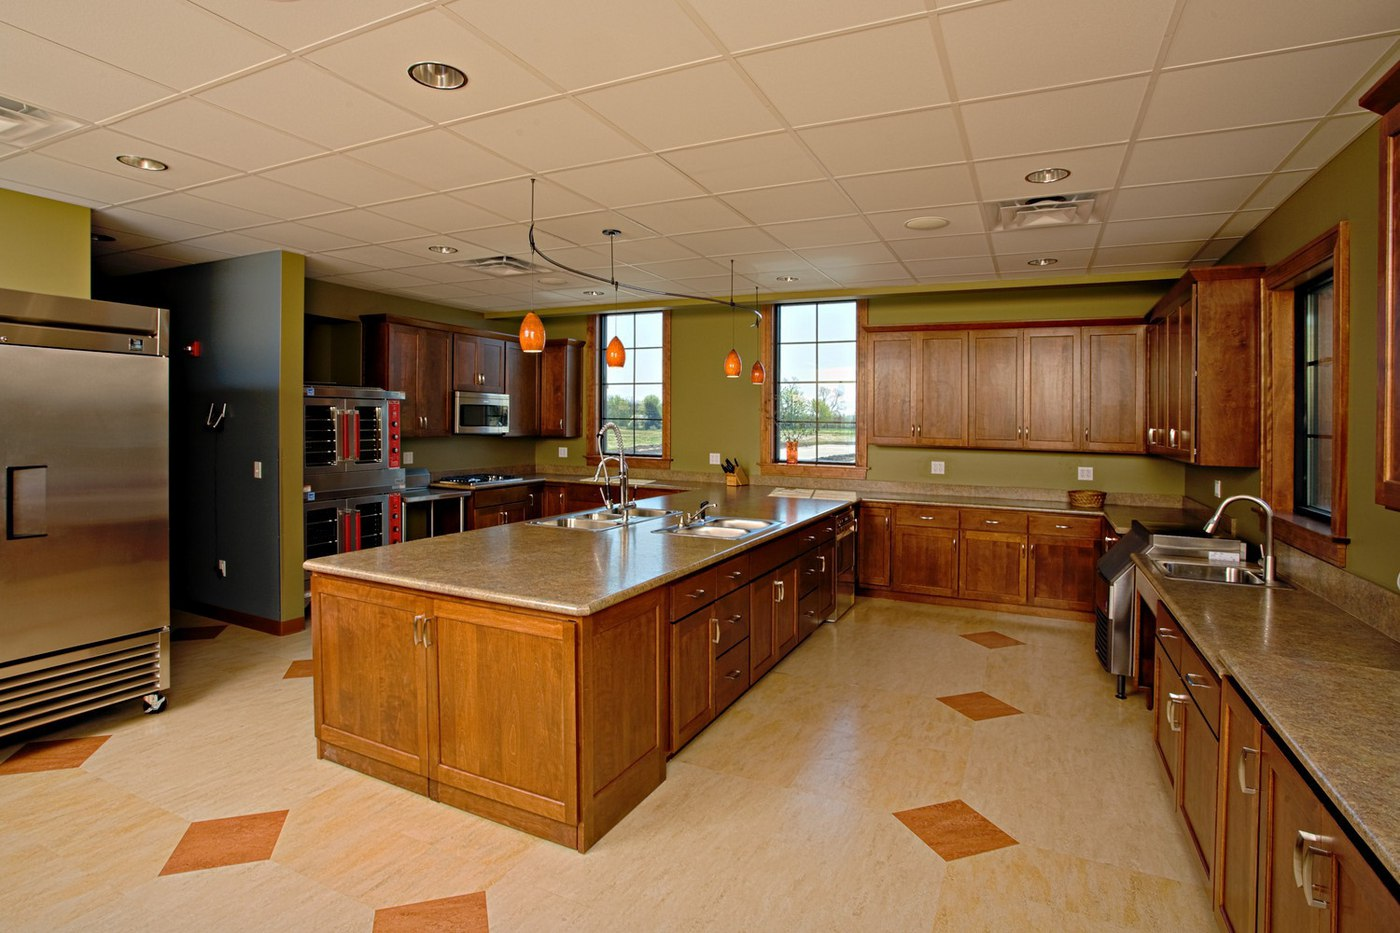 West_Lafayette_Appostolic_-_Kitchen-2.jpg